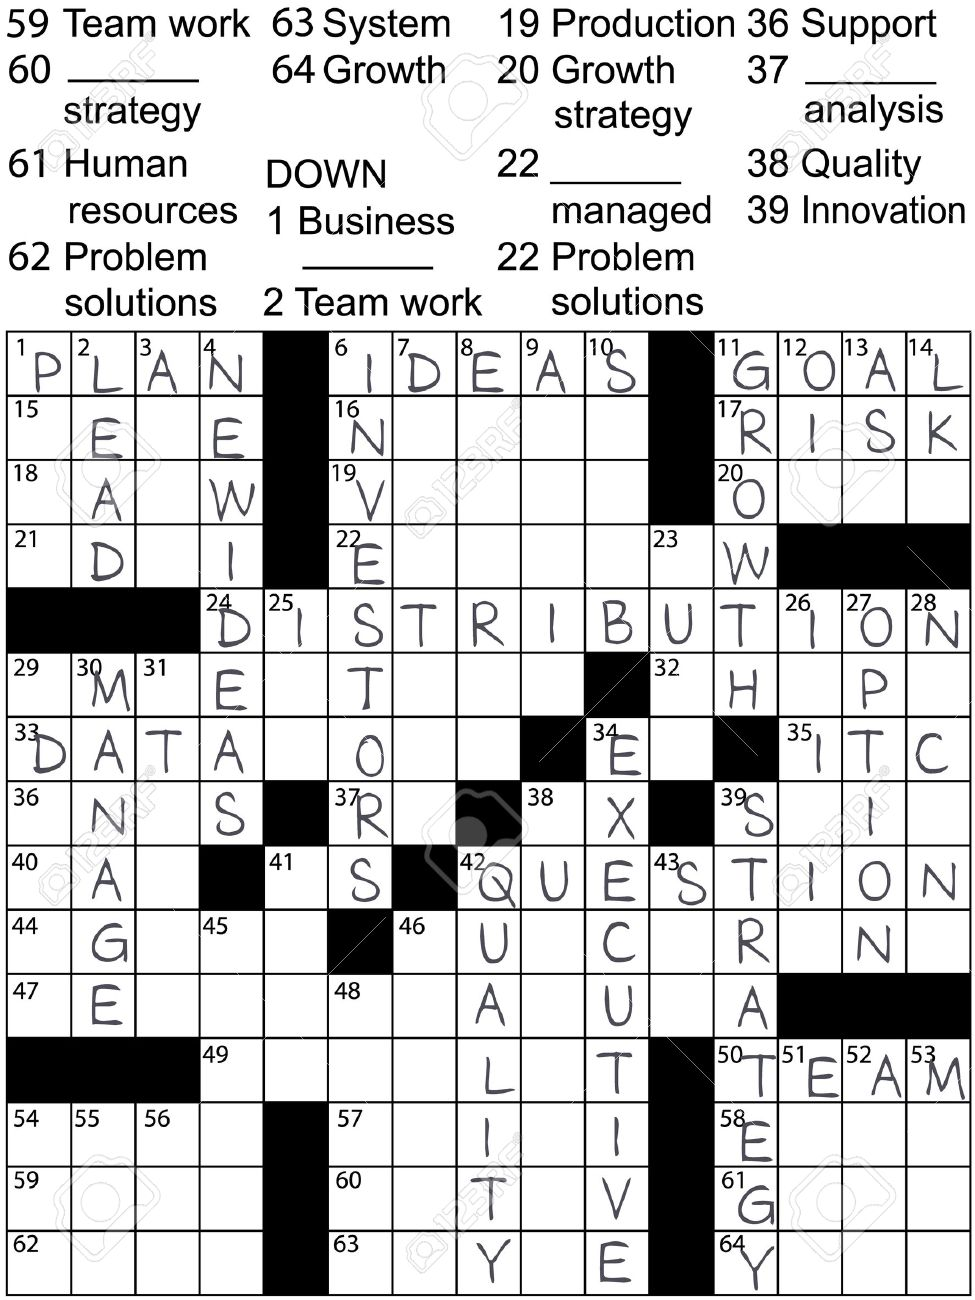 A Crossword Puzzle With Business Plan Words As Clues And Solution